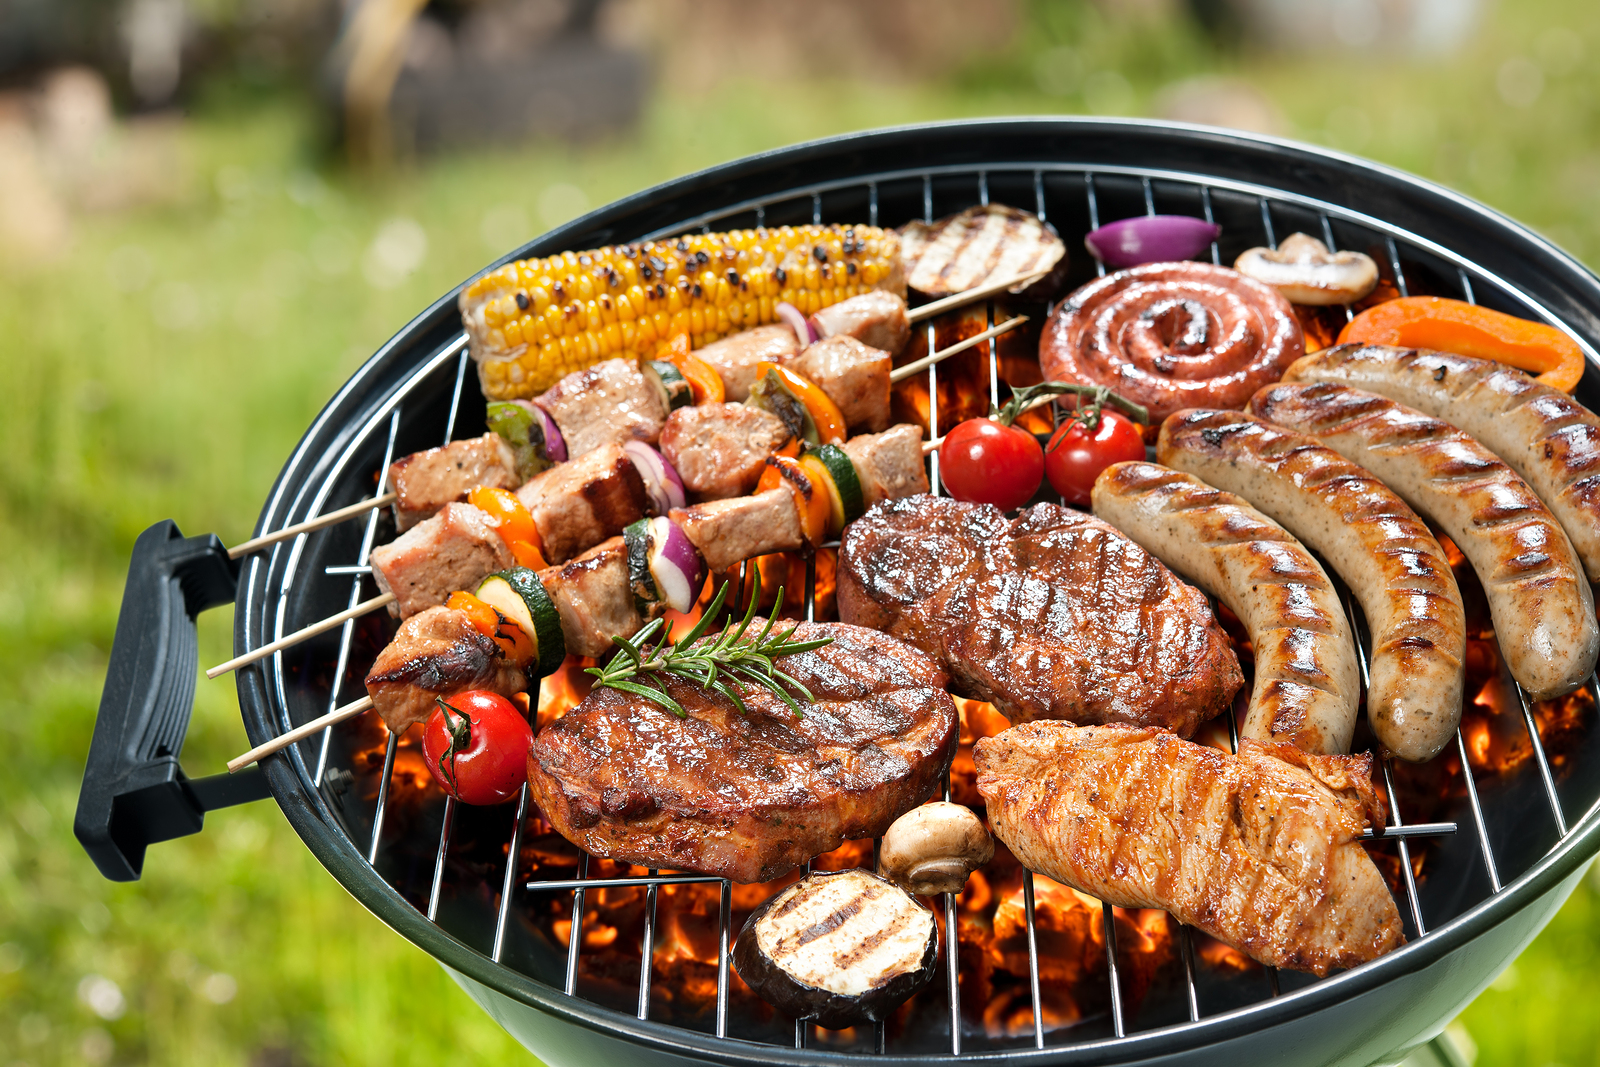 Your Guide to Safe Grilling this Summer